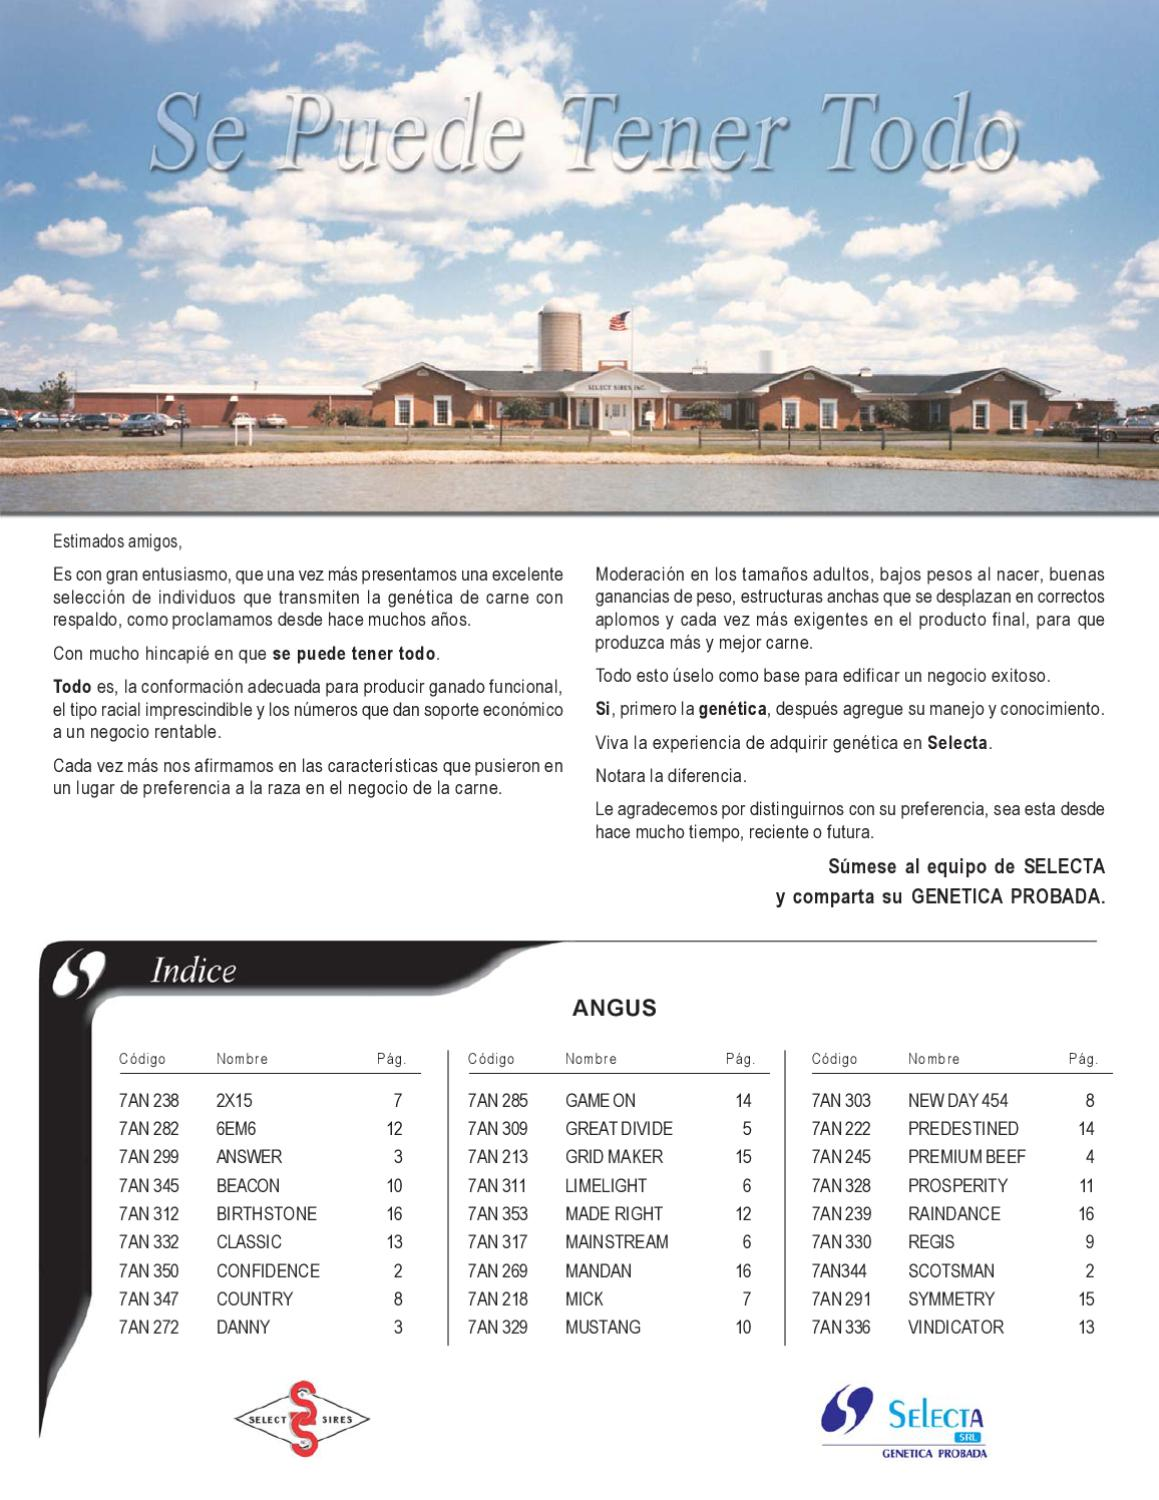 Catalogo razas de carne by selecta srl issuu for Catalogo selecta